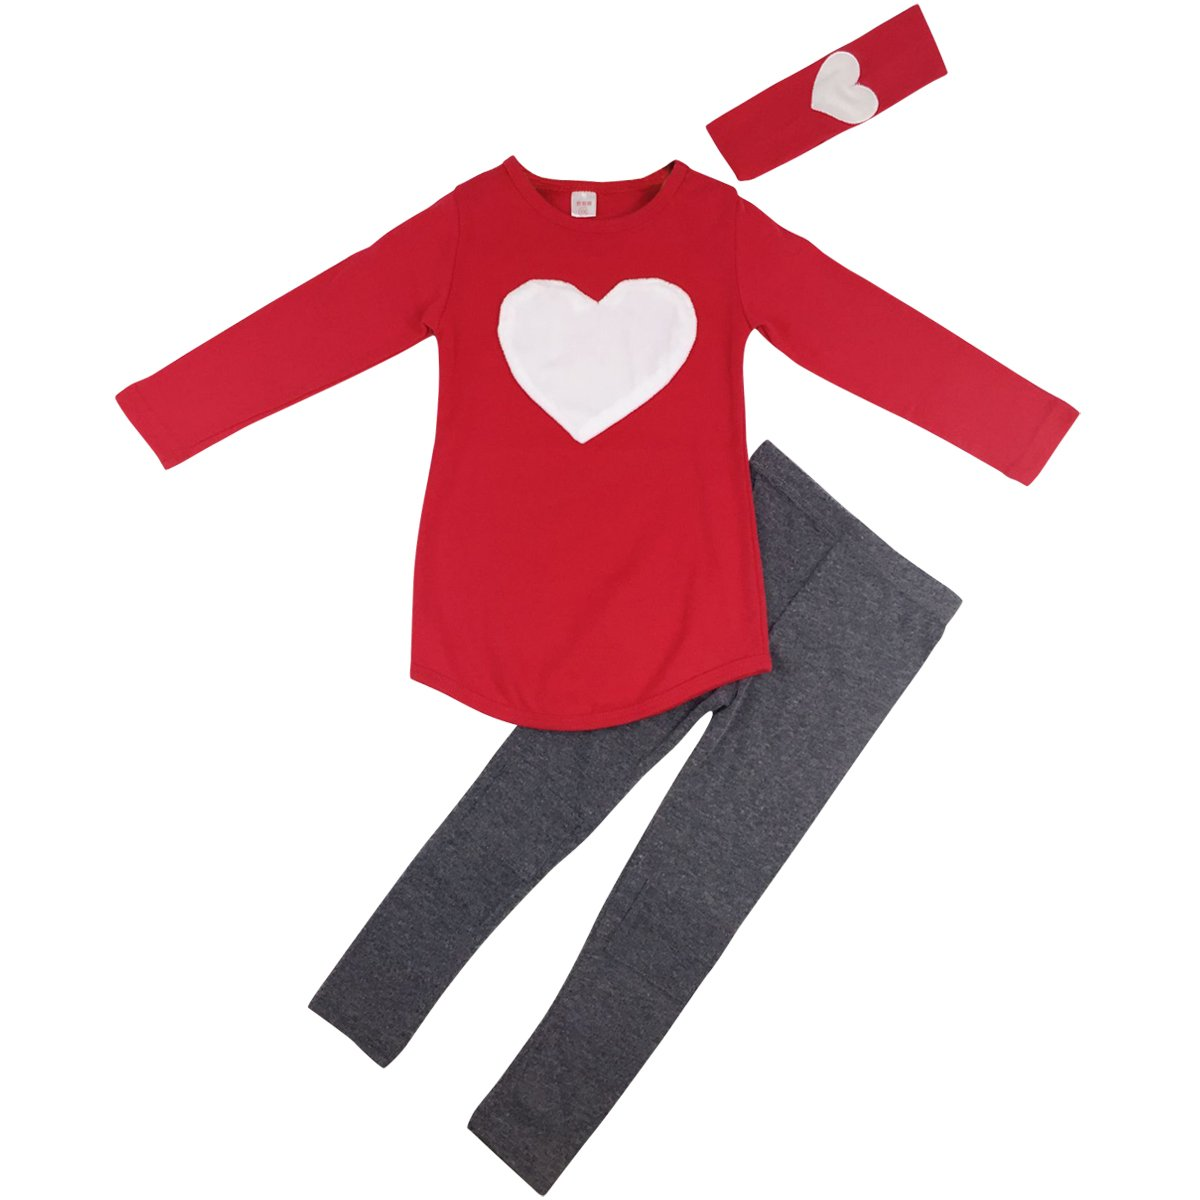 Jastore Kids Girl Cute 2PCS Heart Shaped Clothing Set Long Sleeve Top +Leggings (6-7 Years, Red)